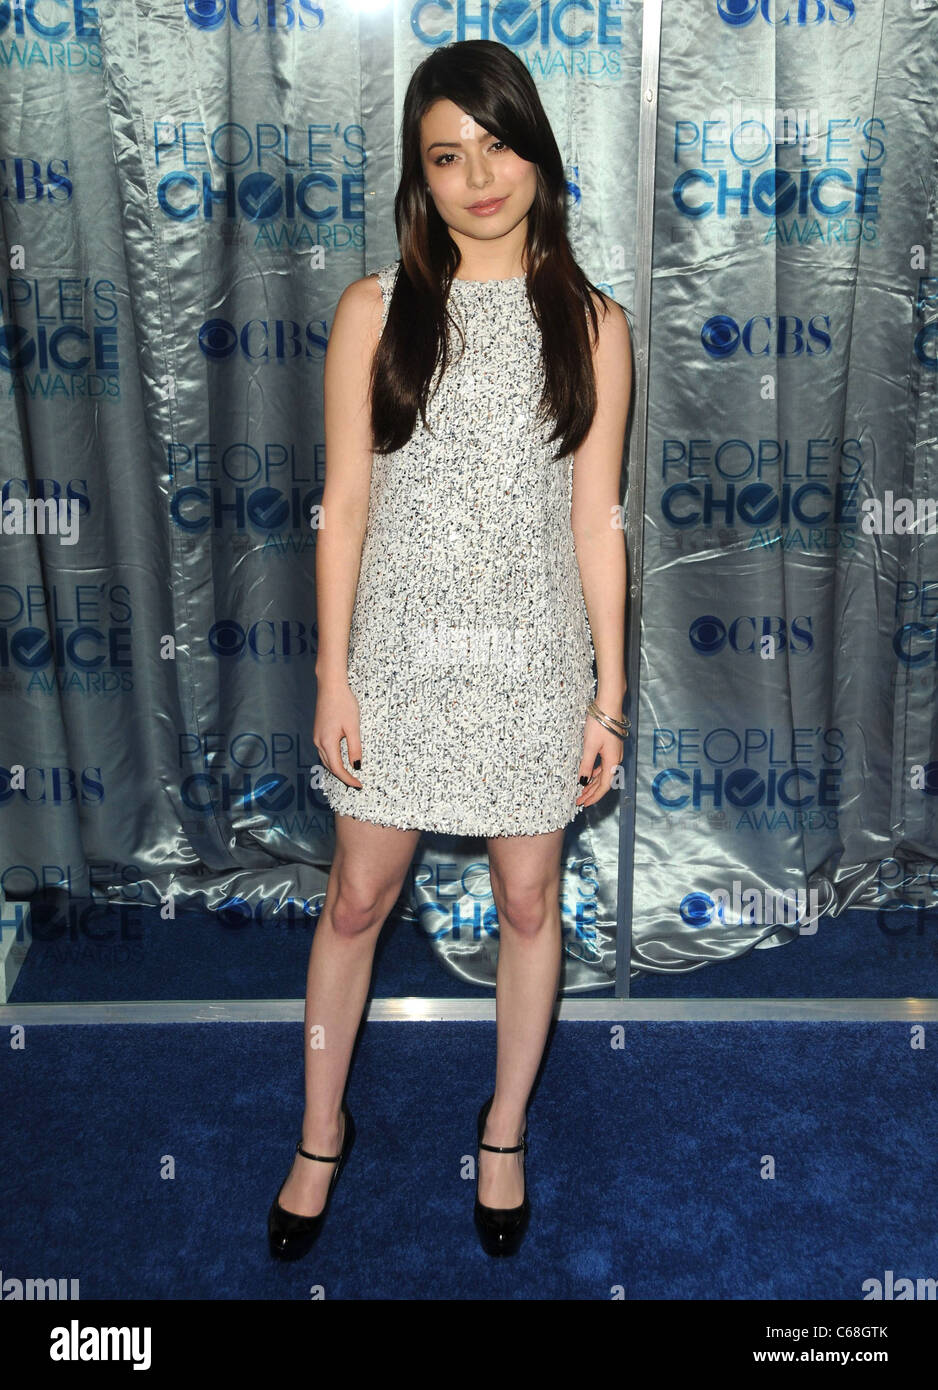 Miranda Cosgrove at arrivals for People's Choice Awards 2011 - ARRIVALS, Nokia Theatre L.A. LIVE, Los Angeles, - Stock Image